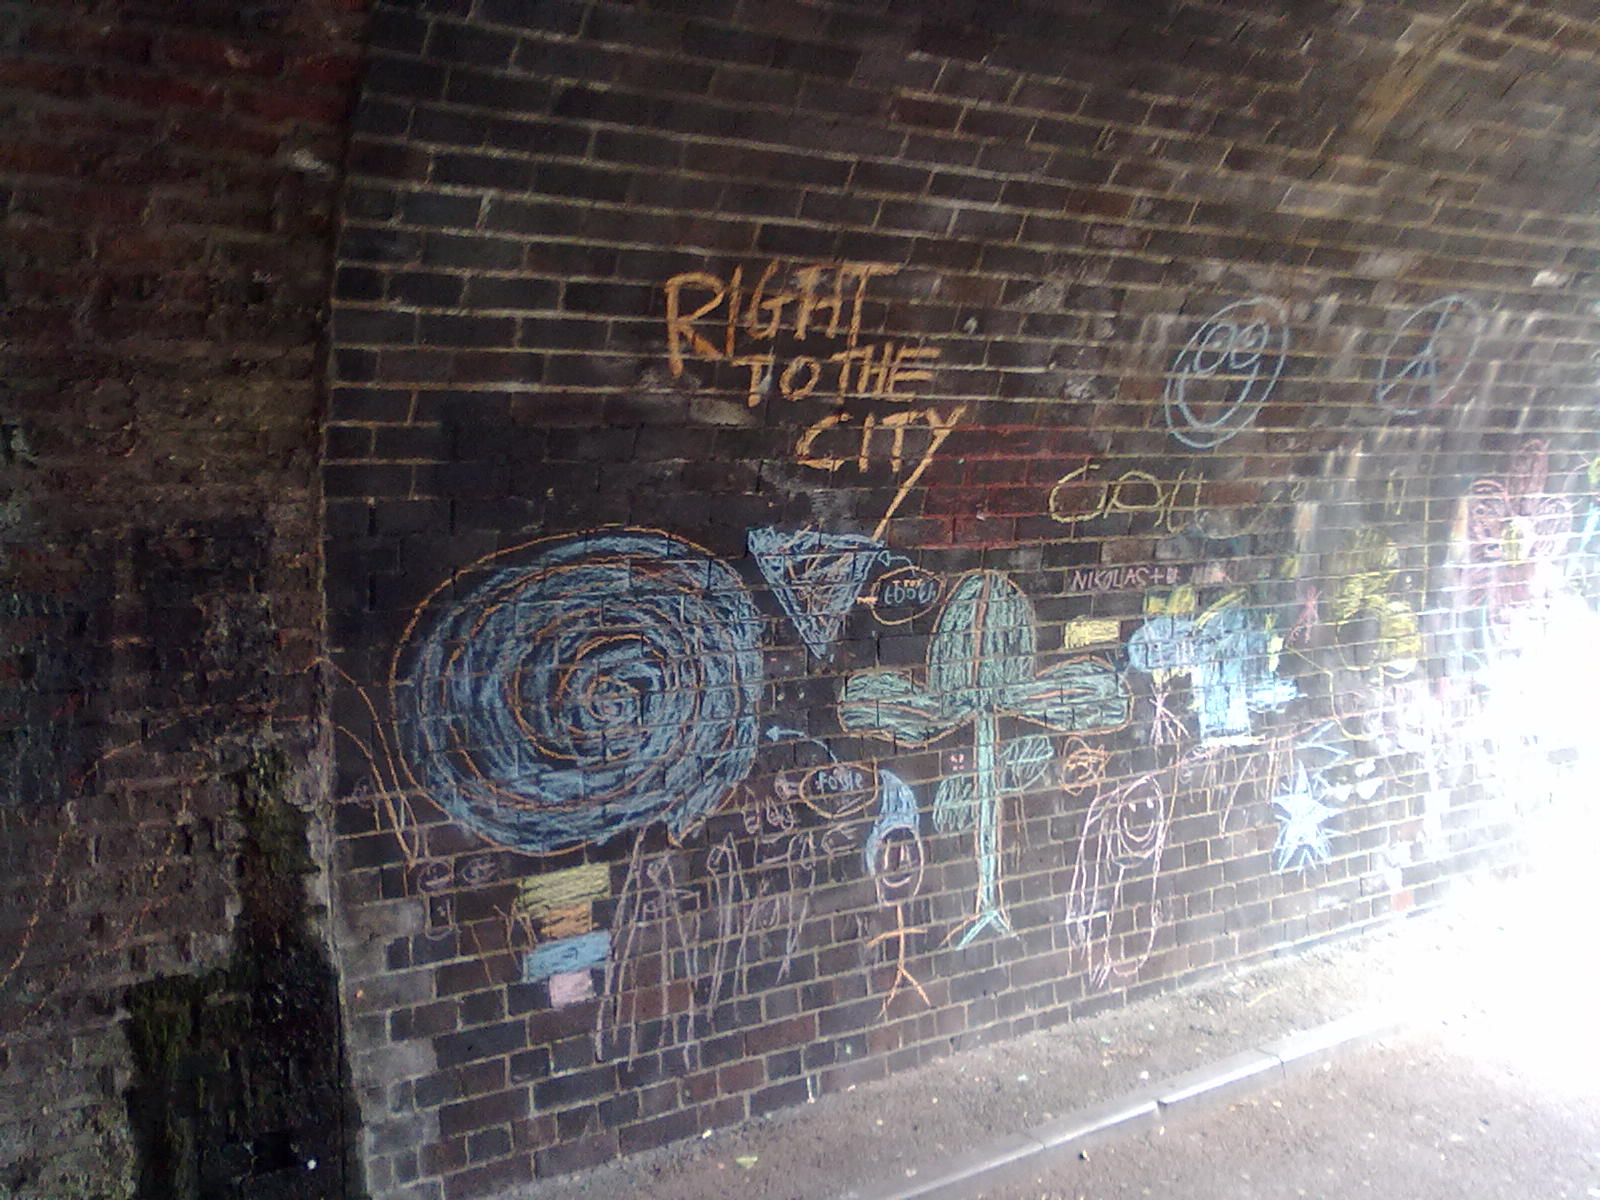 Rights to the city image